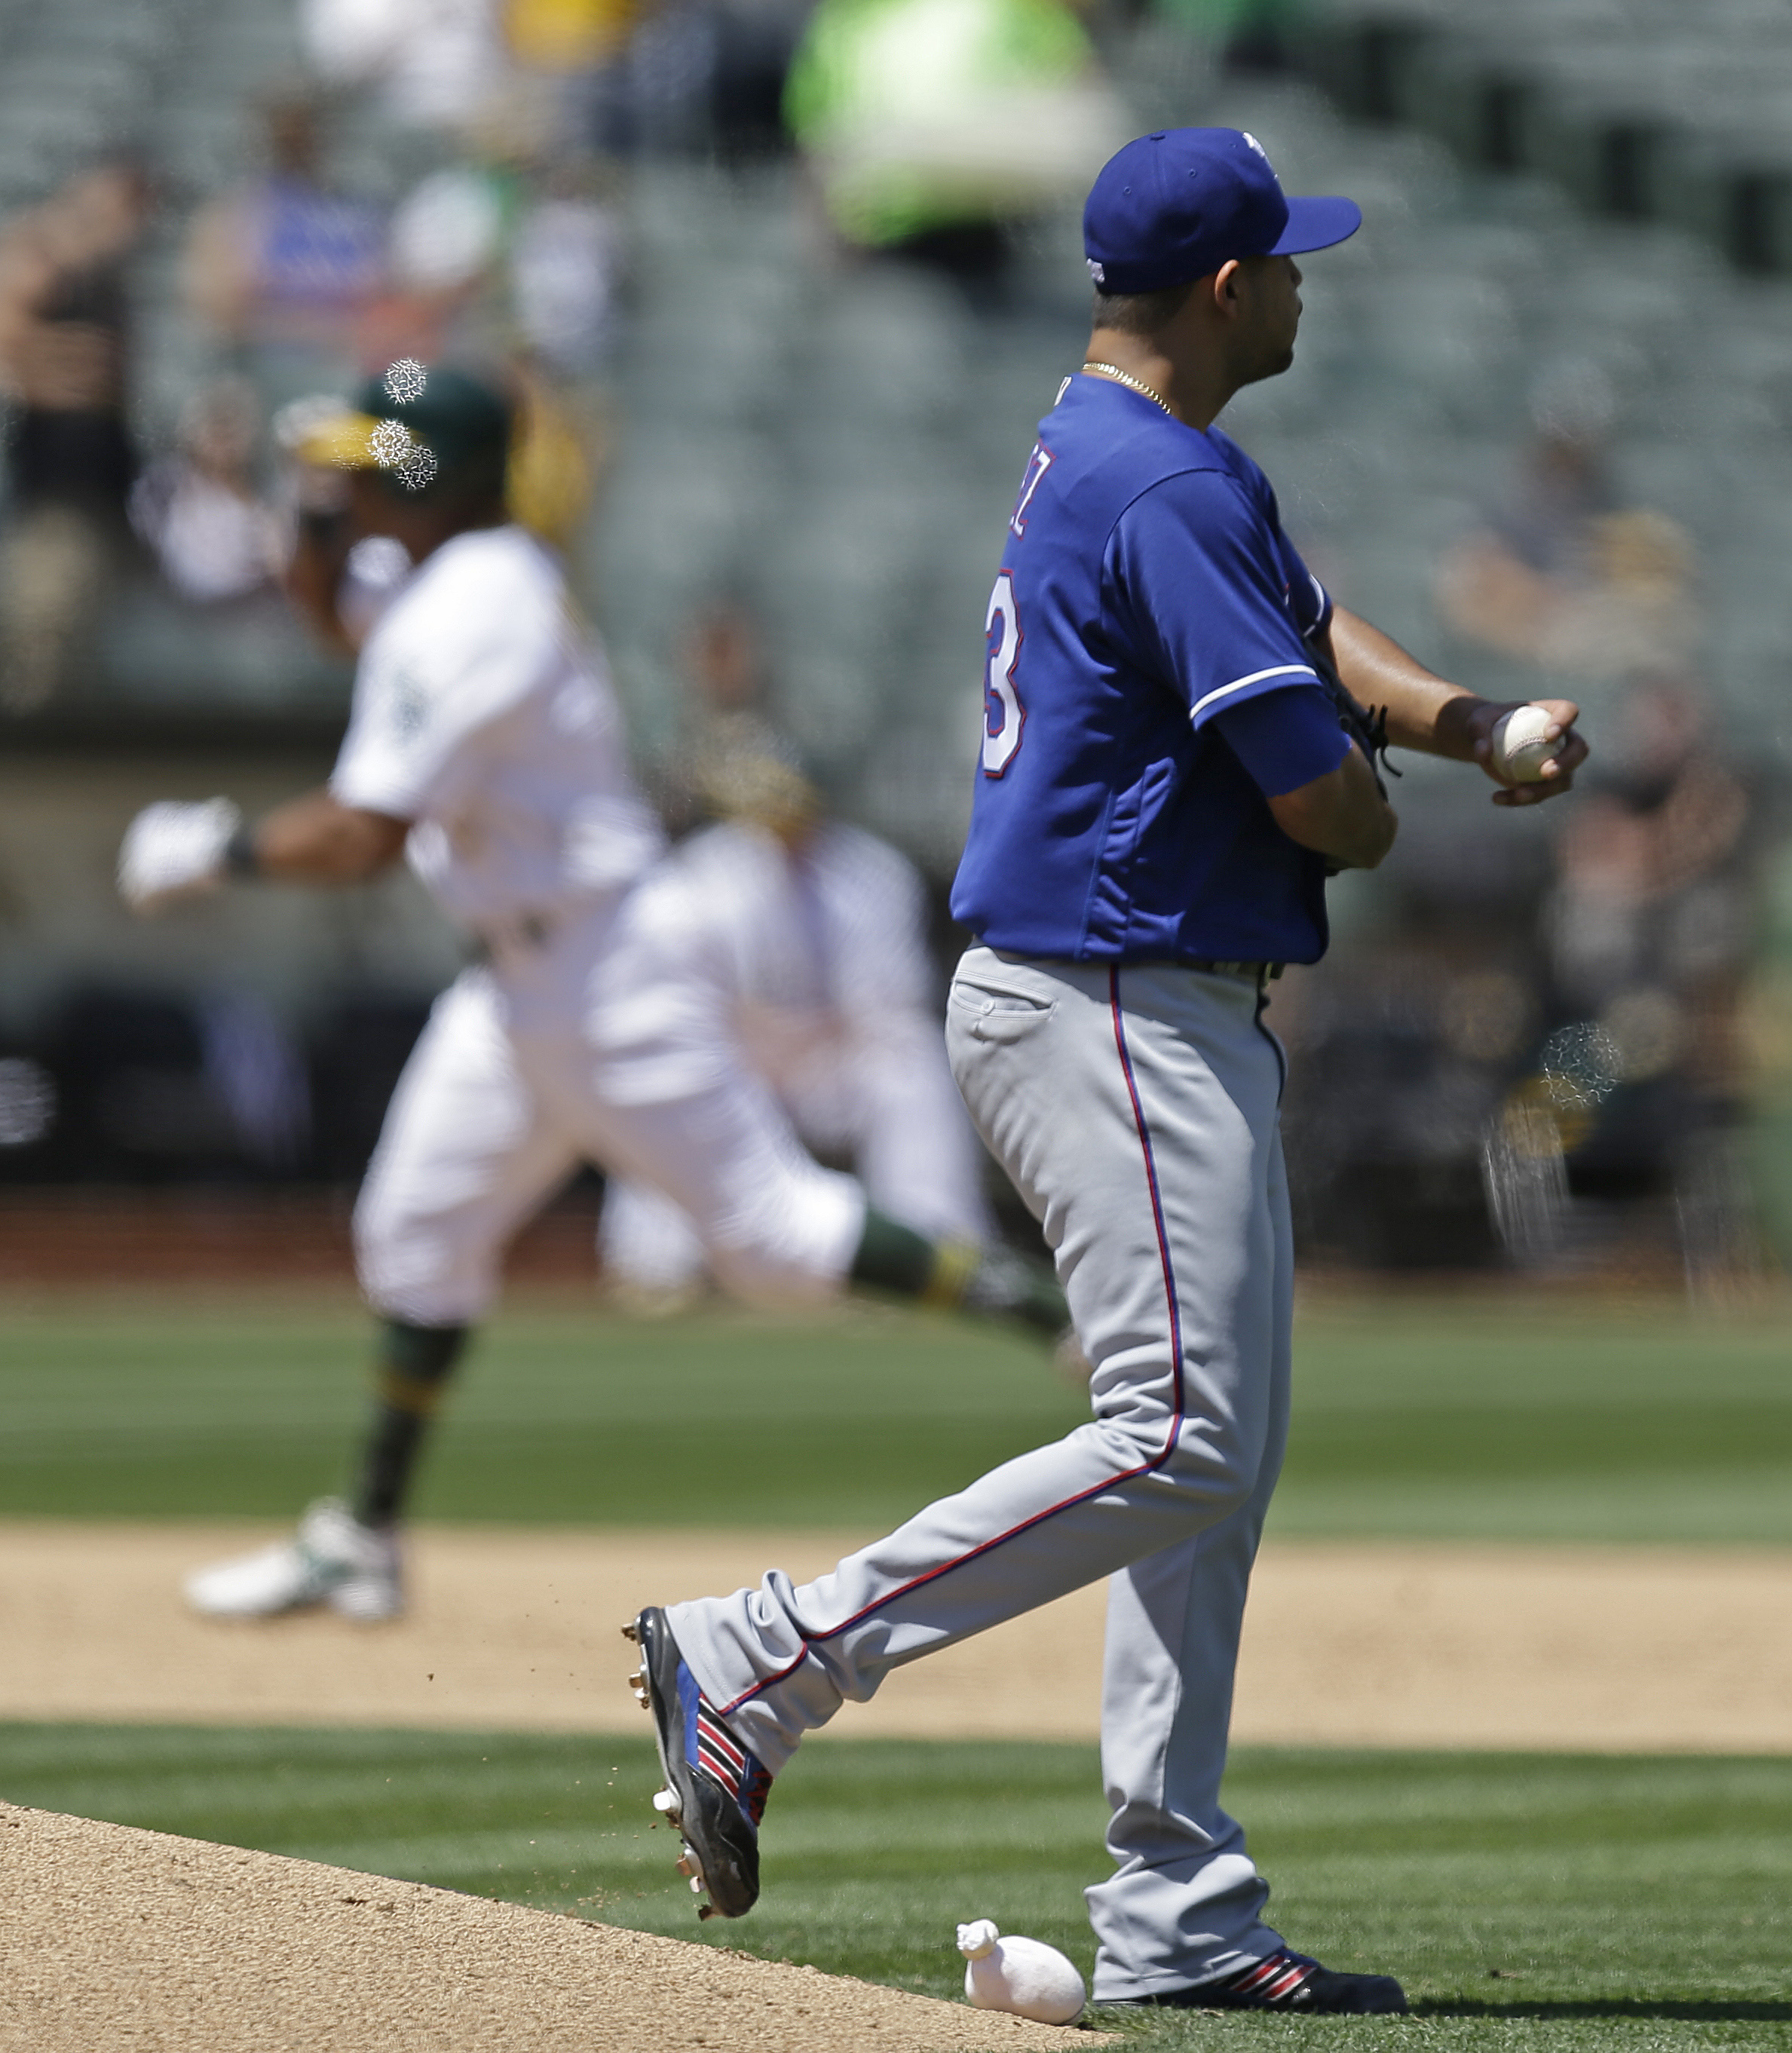 Texas Rangers pitcher Martin Perez, right, walks off the mound as he waits for Oakland Athletics' Khris Davis, left, to run the bases after hitting a home run in the sixth inning of a baseball game, Wednesday, May 18, 2016, in Oakland, Calif. (AP Photo/Be